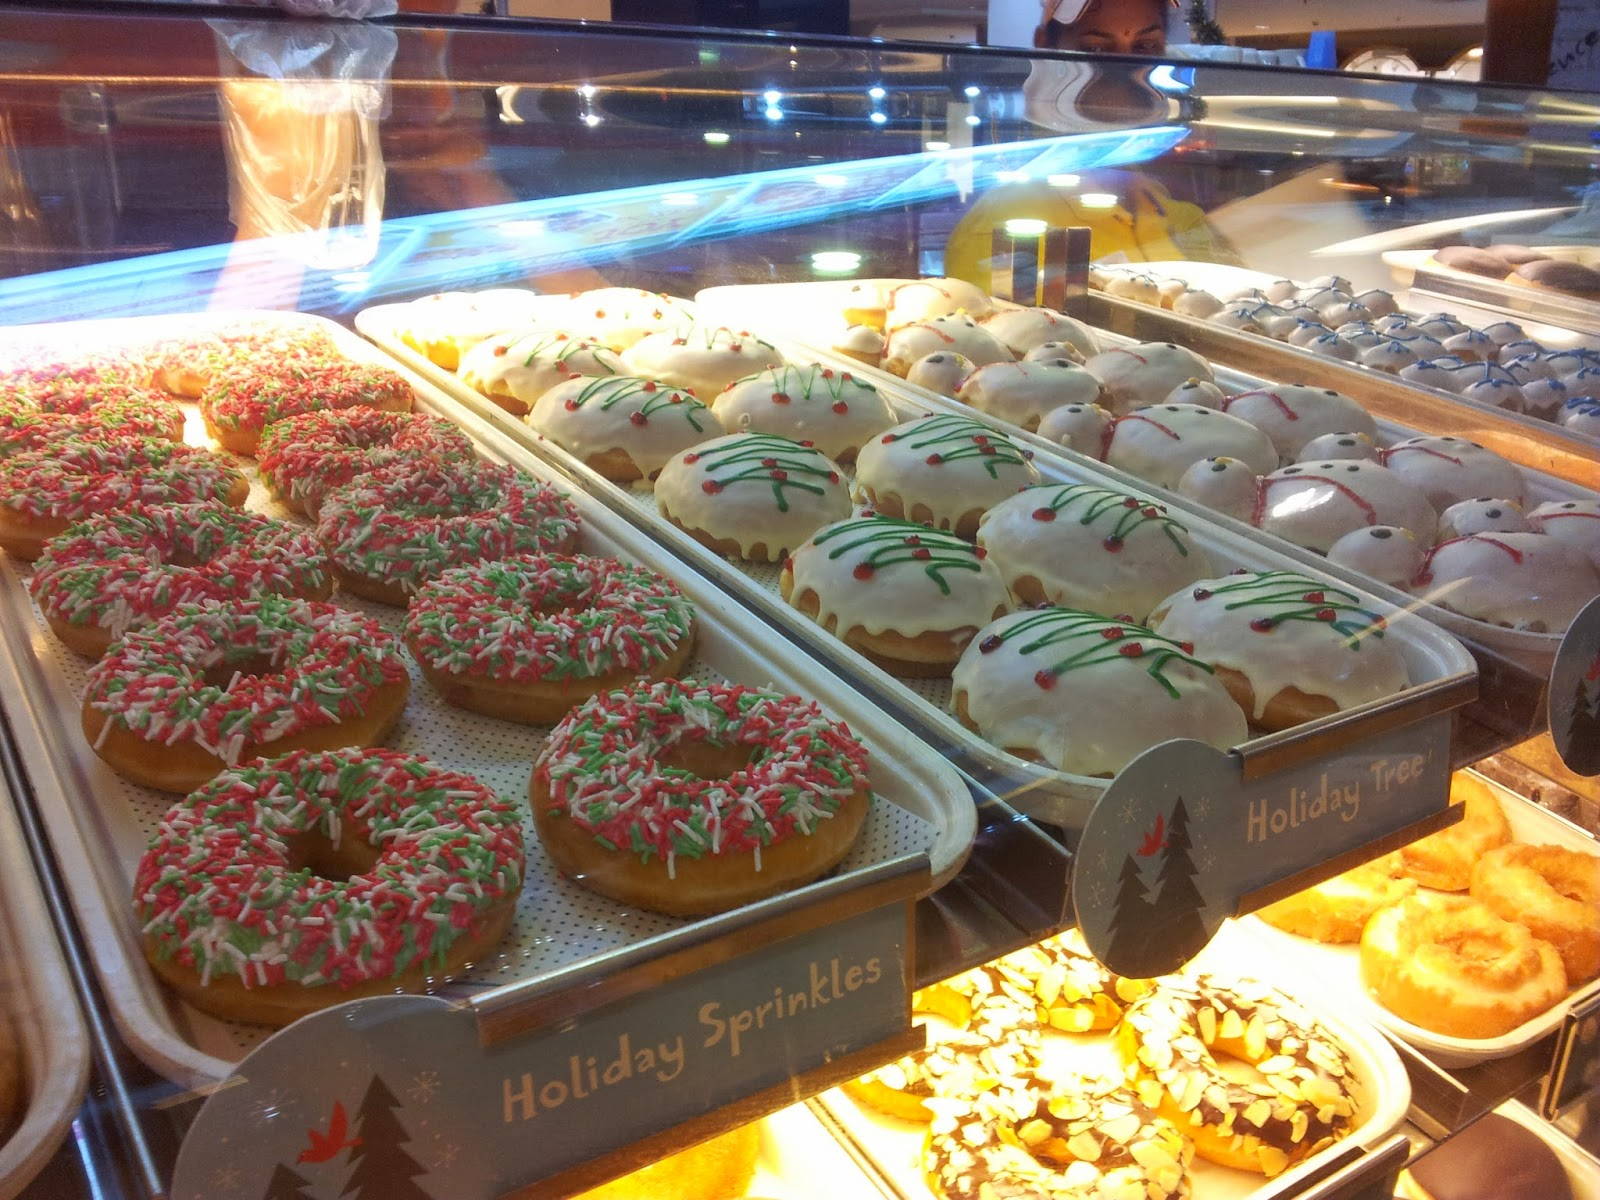 Krispy Kreme Announced Its Christmas Donuts For 2019 |Christmas Krispy Kreme Doughnuts